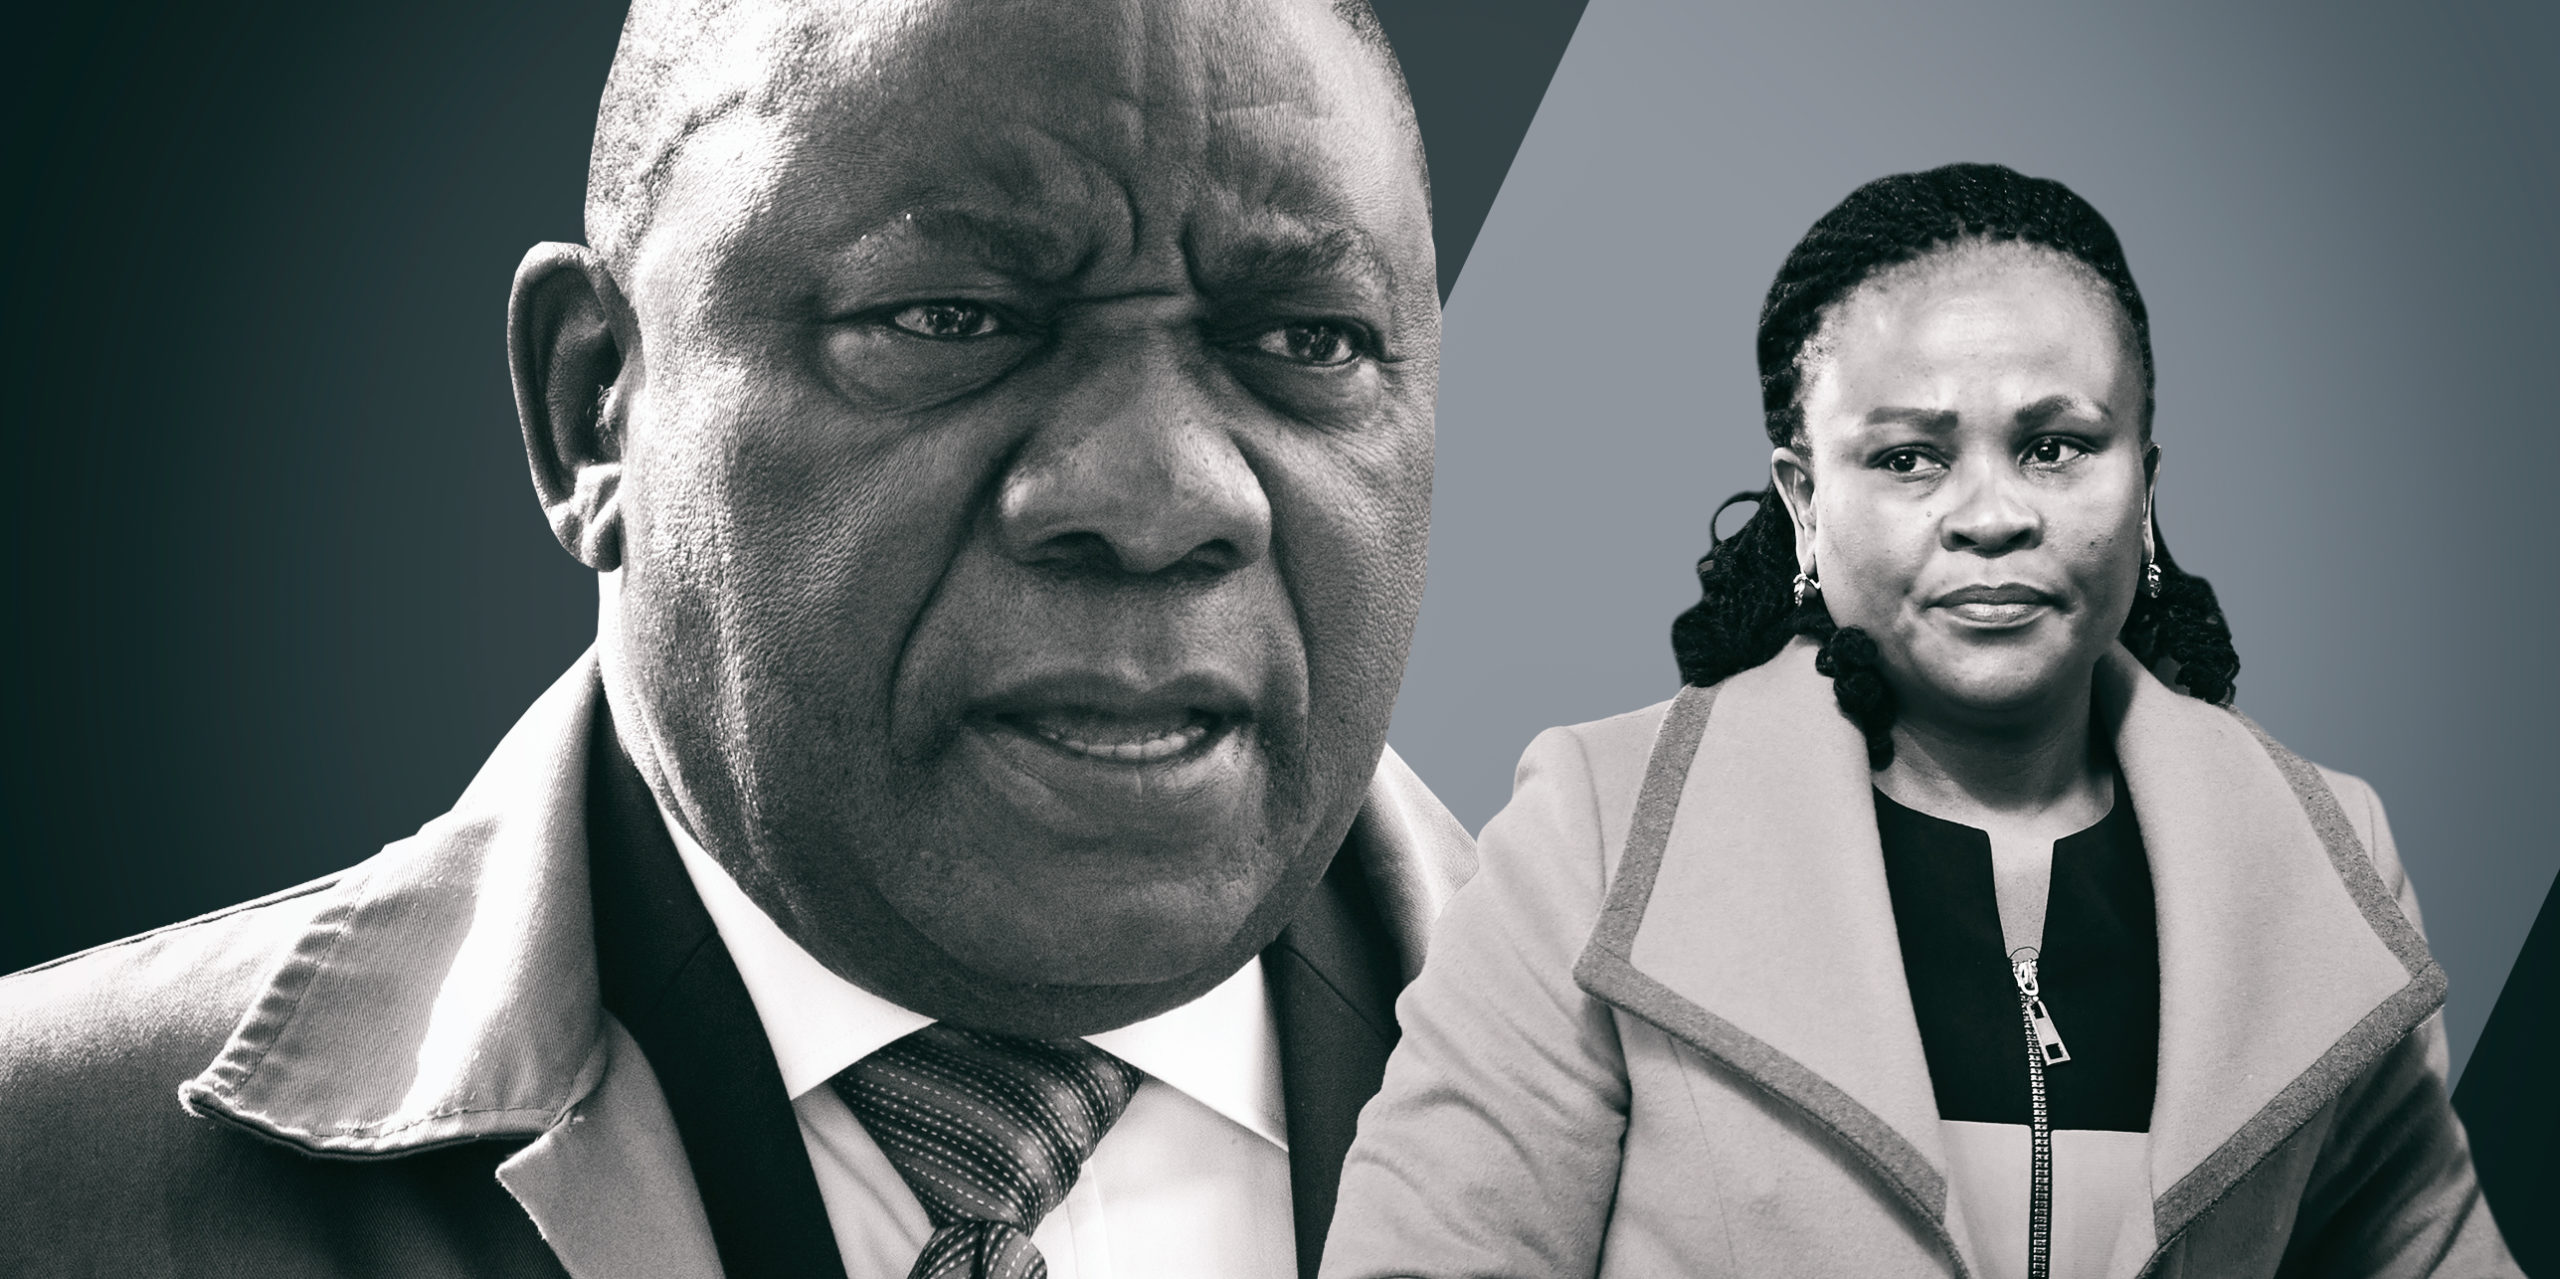 Ramaphosa's lawyers on Mkhwebane: 'Report reveals reckless determination to nail the president' - Daily Maverick